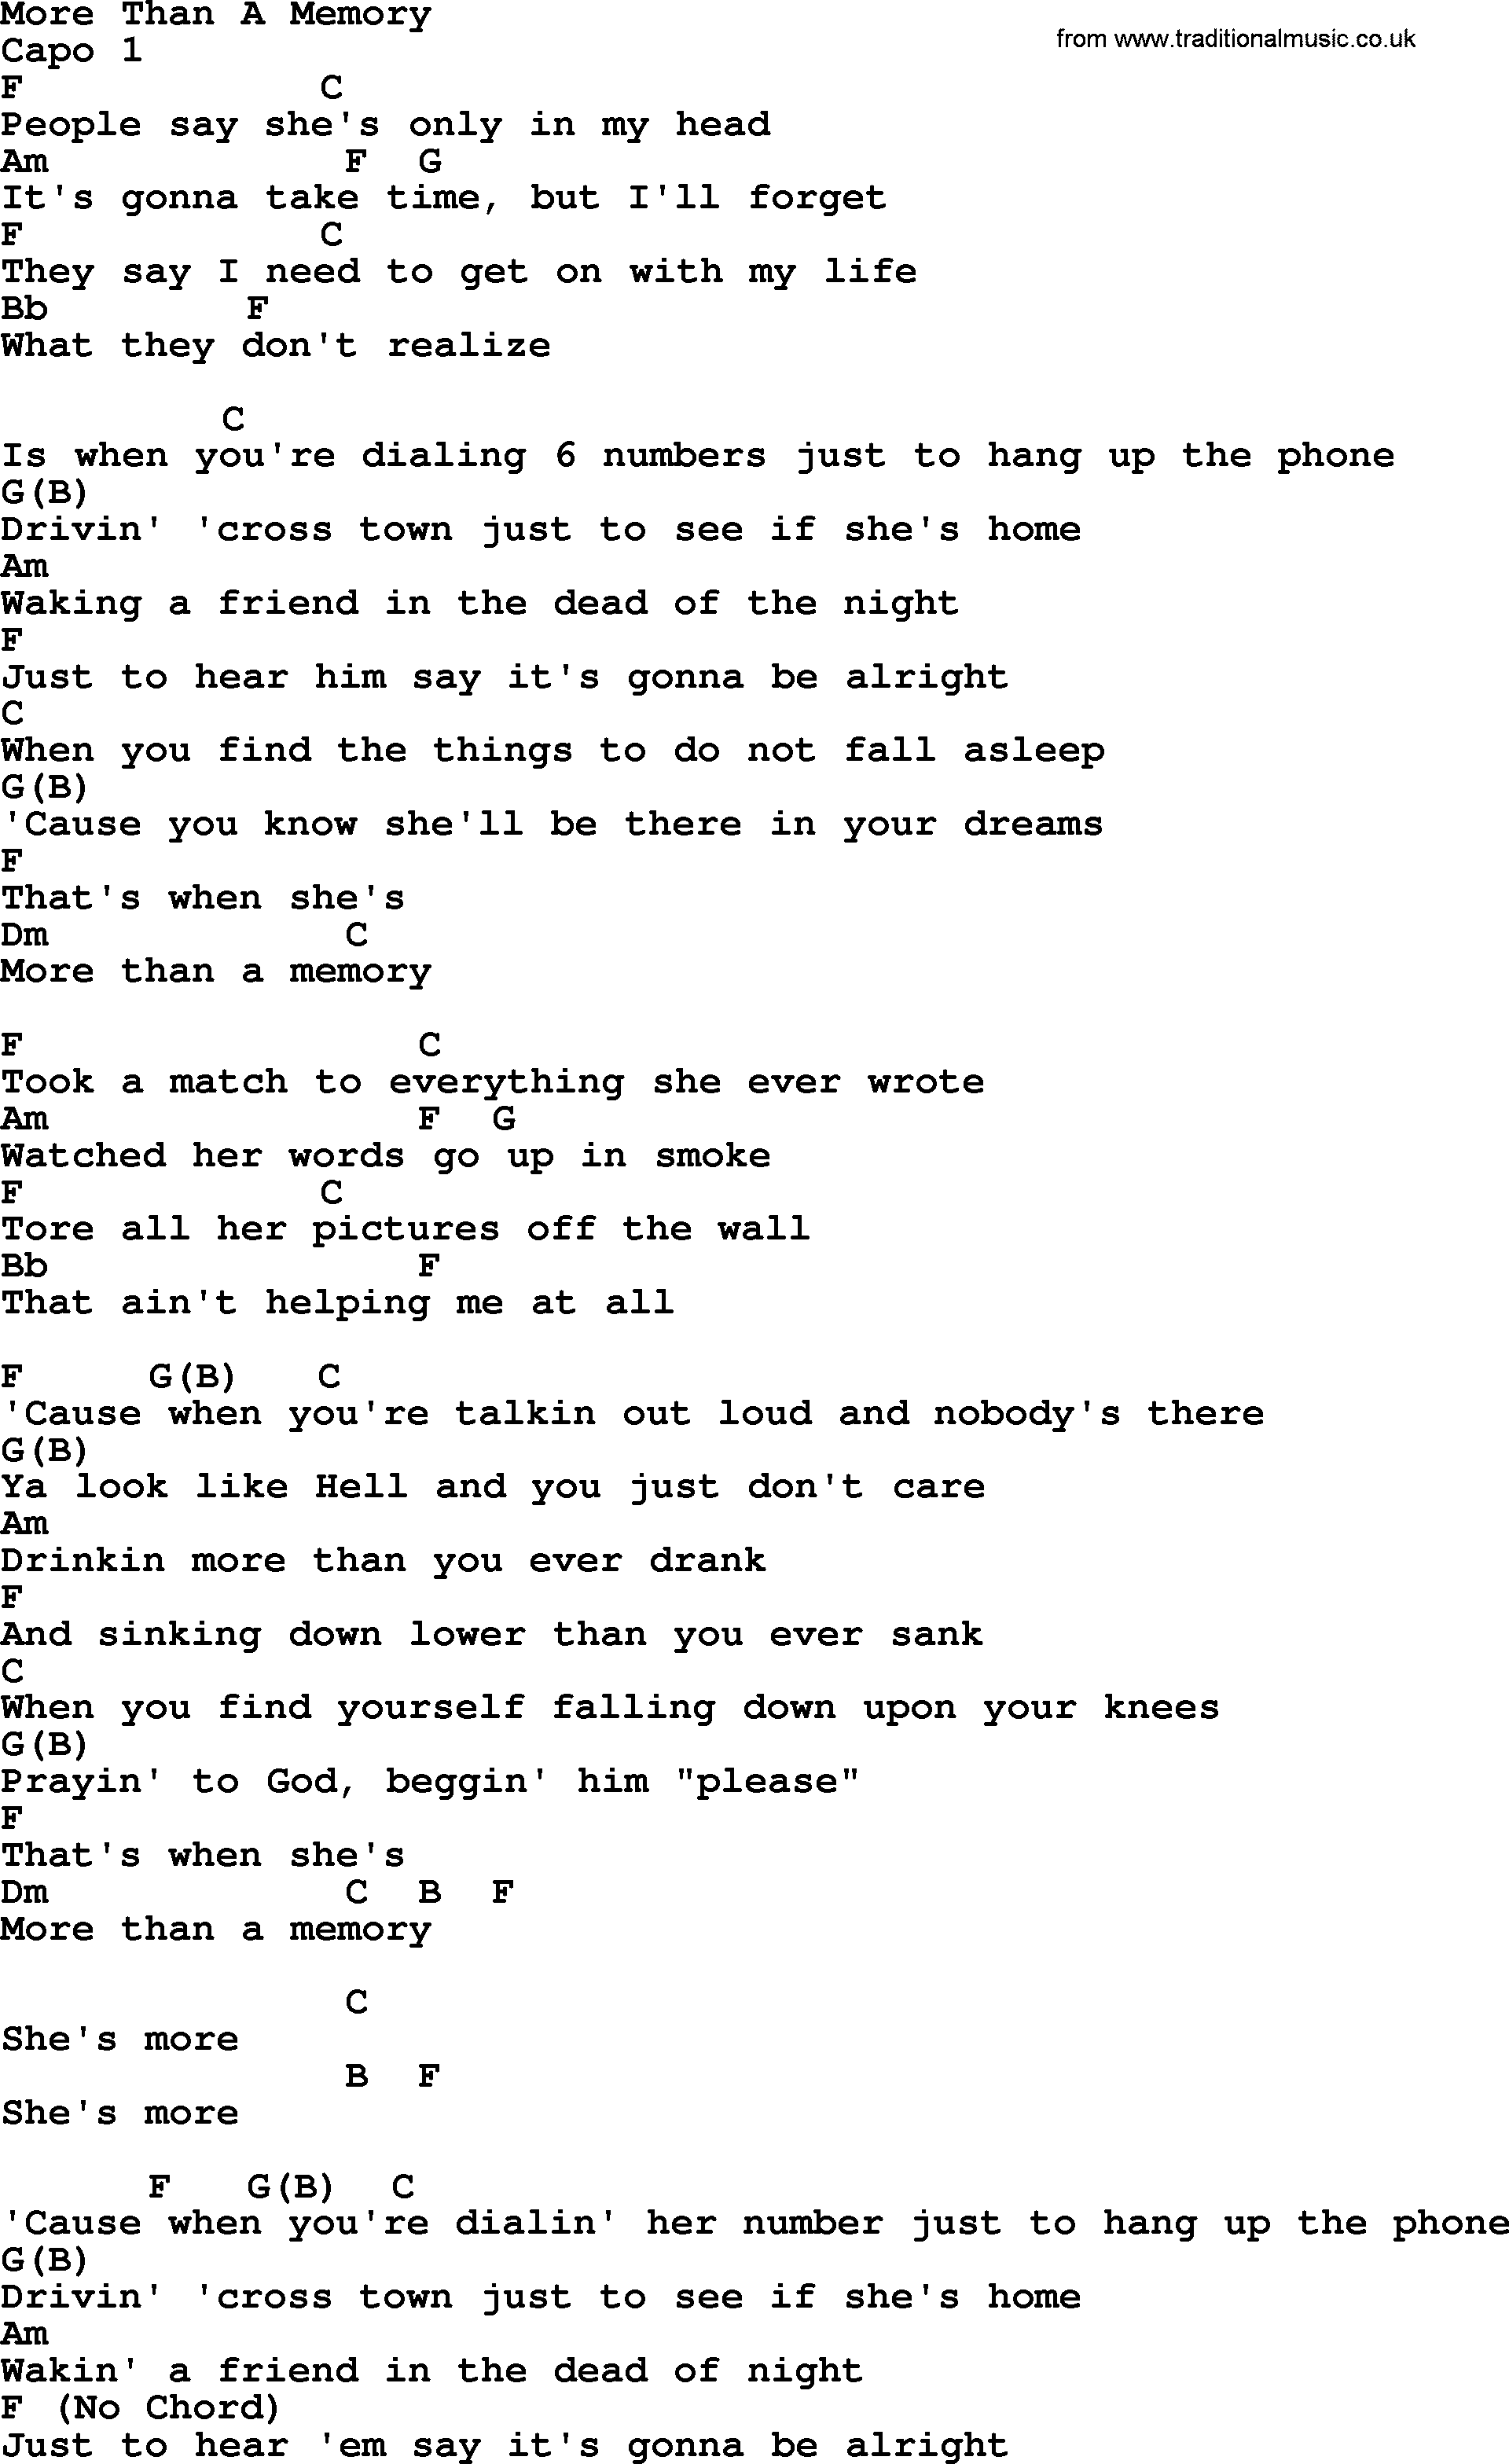 More Than A Memory By Garth Brooks Lyrics And Chords